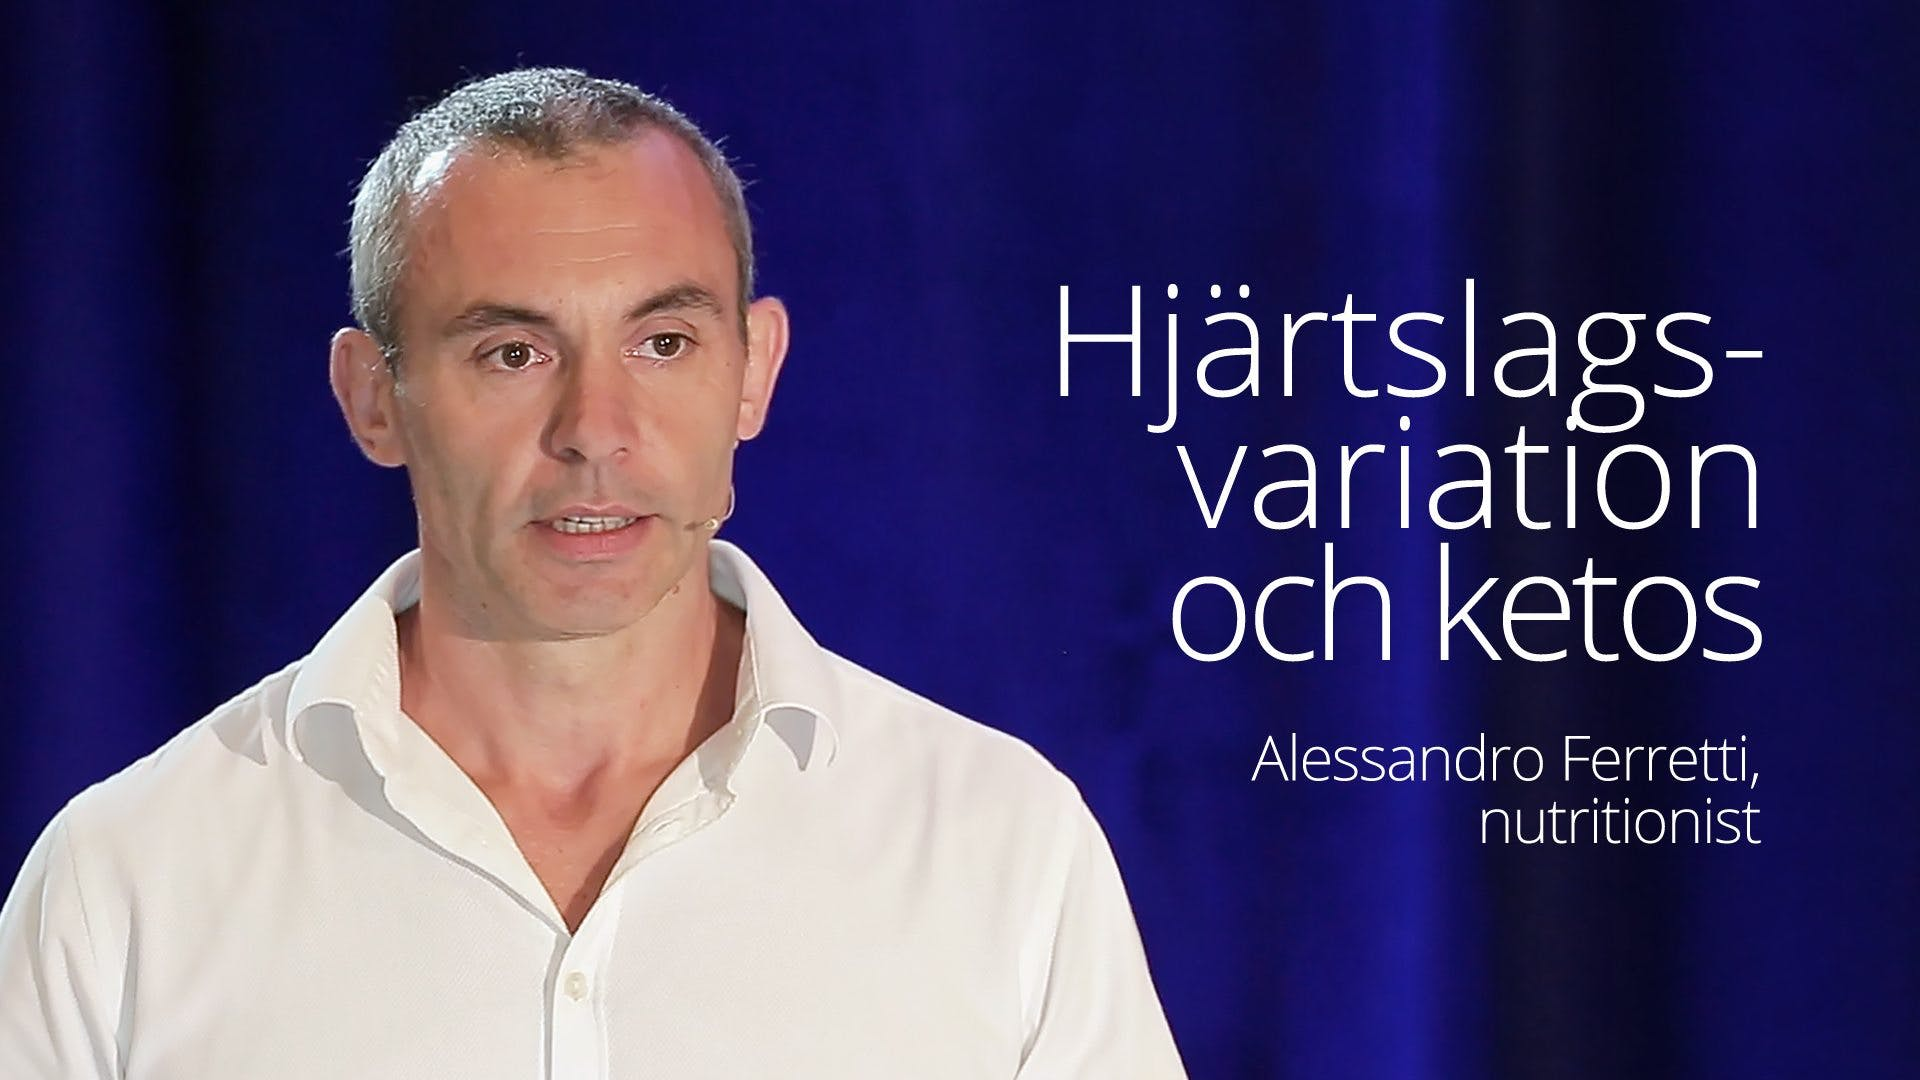 VIDEO: Alessandro Ferretti - Heart Rate Variability and Ketosis (SD 2016)